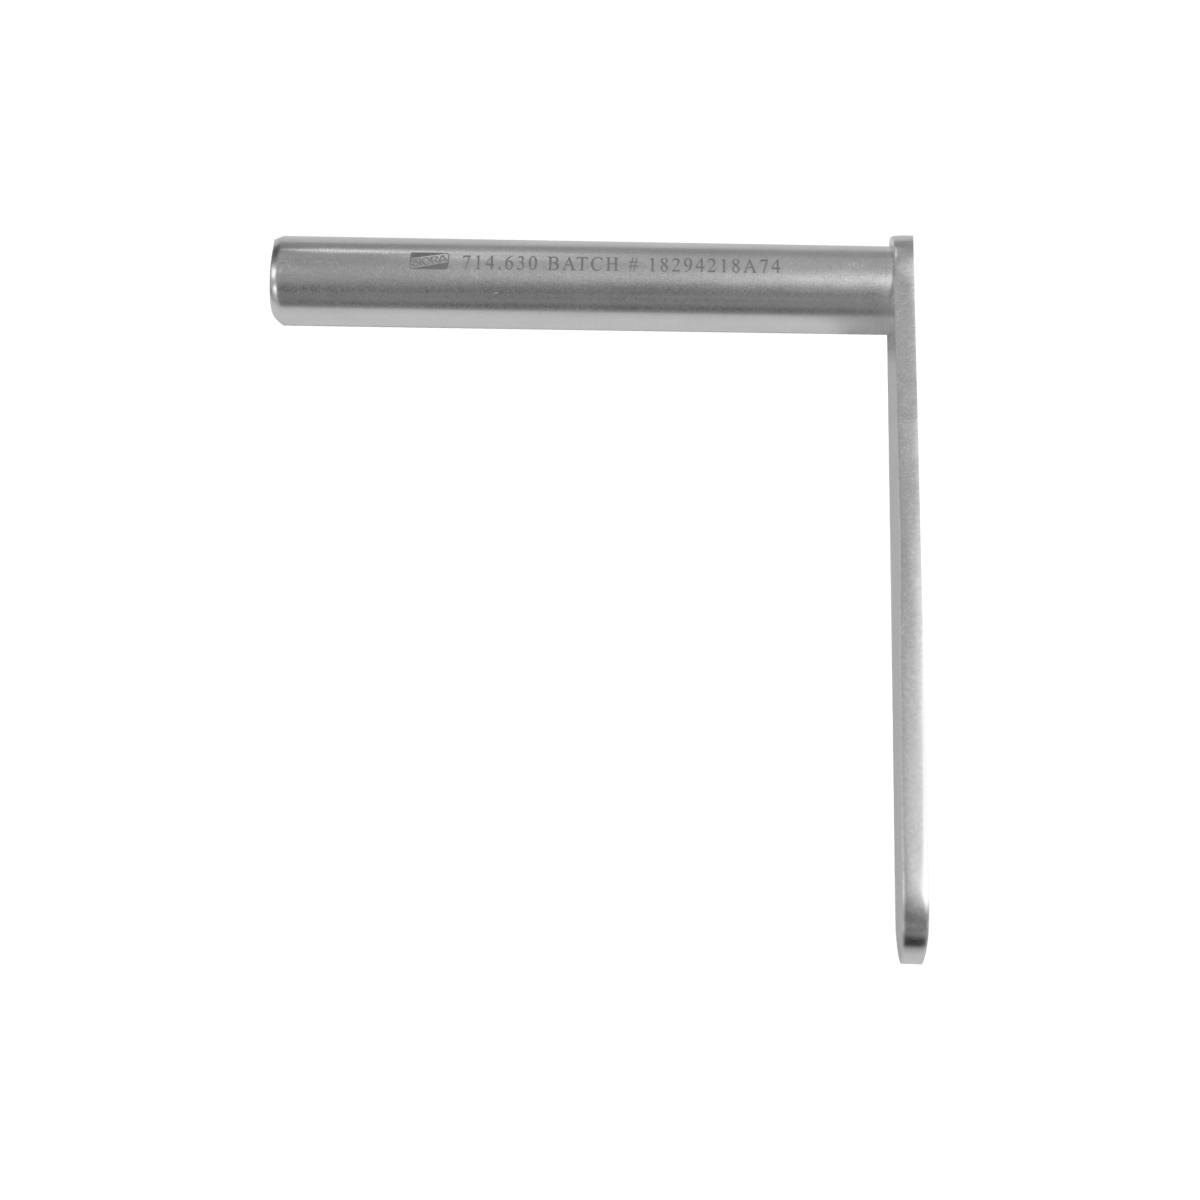 Protection Sleeve for Proximal Entry Reamer 16mm